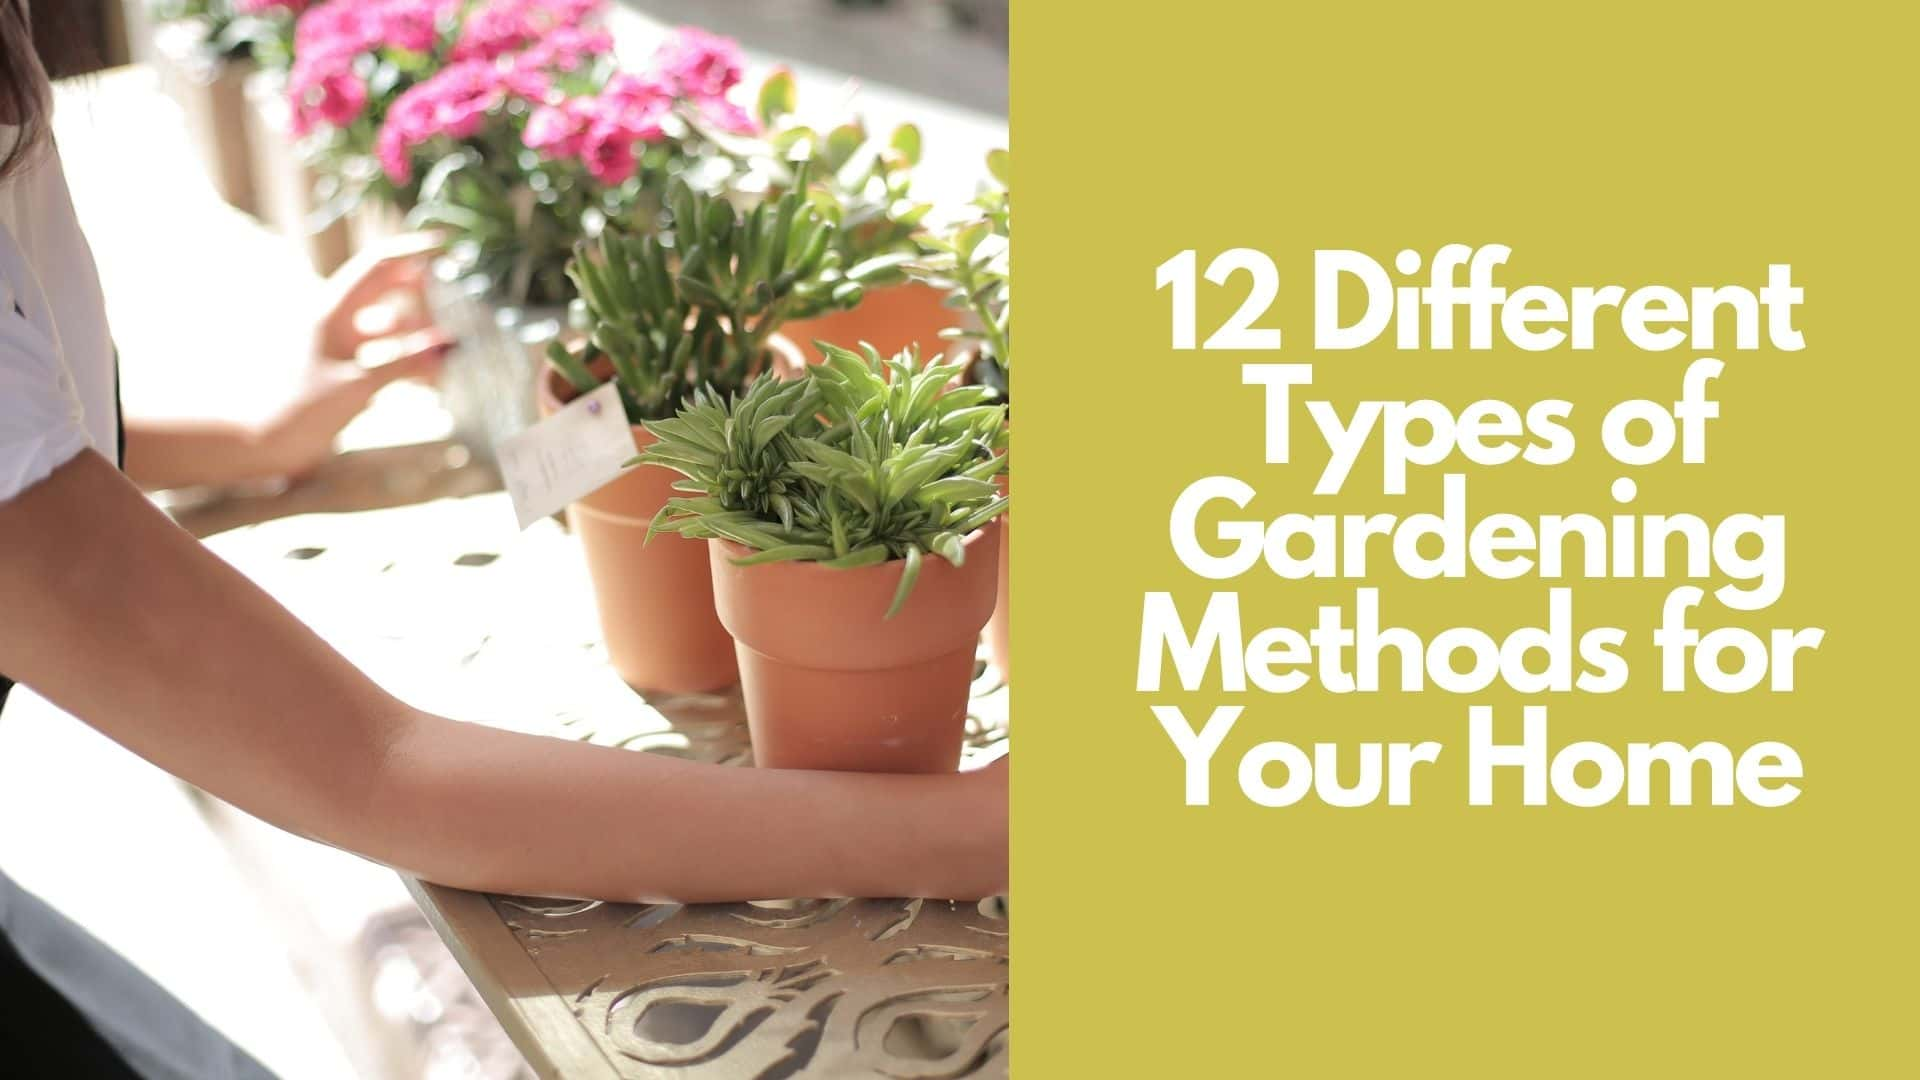 12 Different Types of Gardening Methods for Your Home